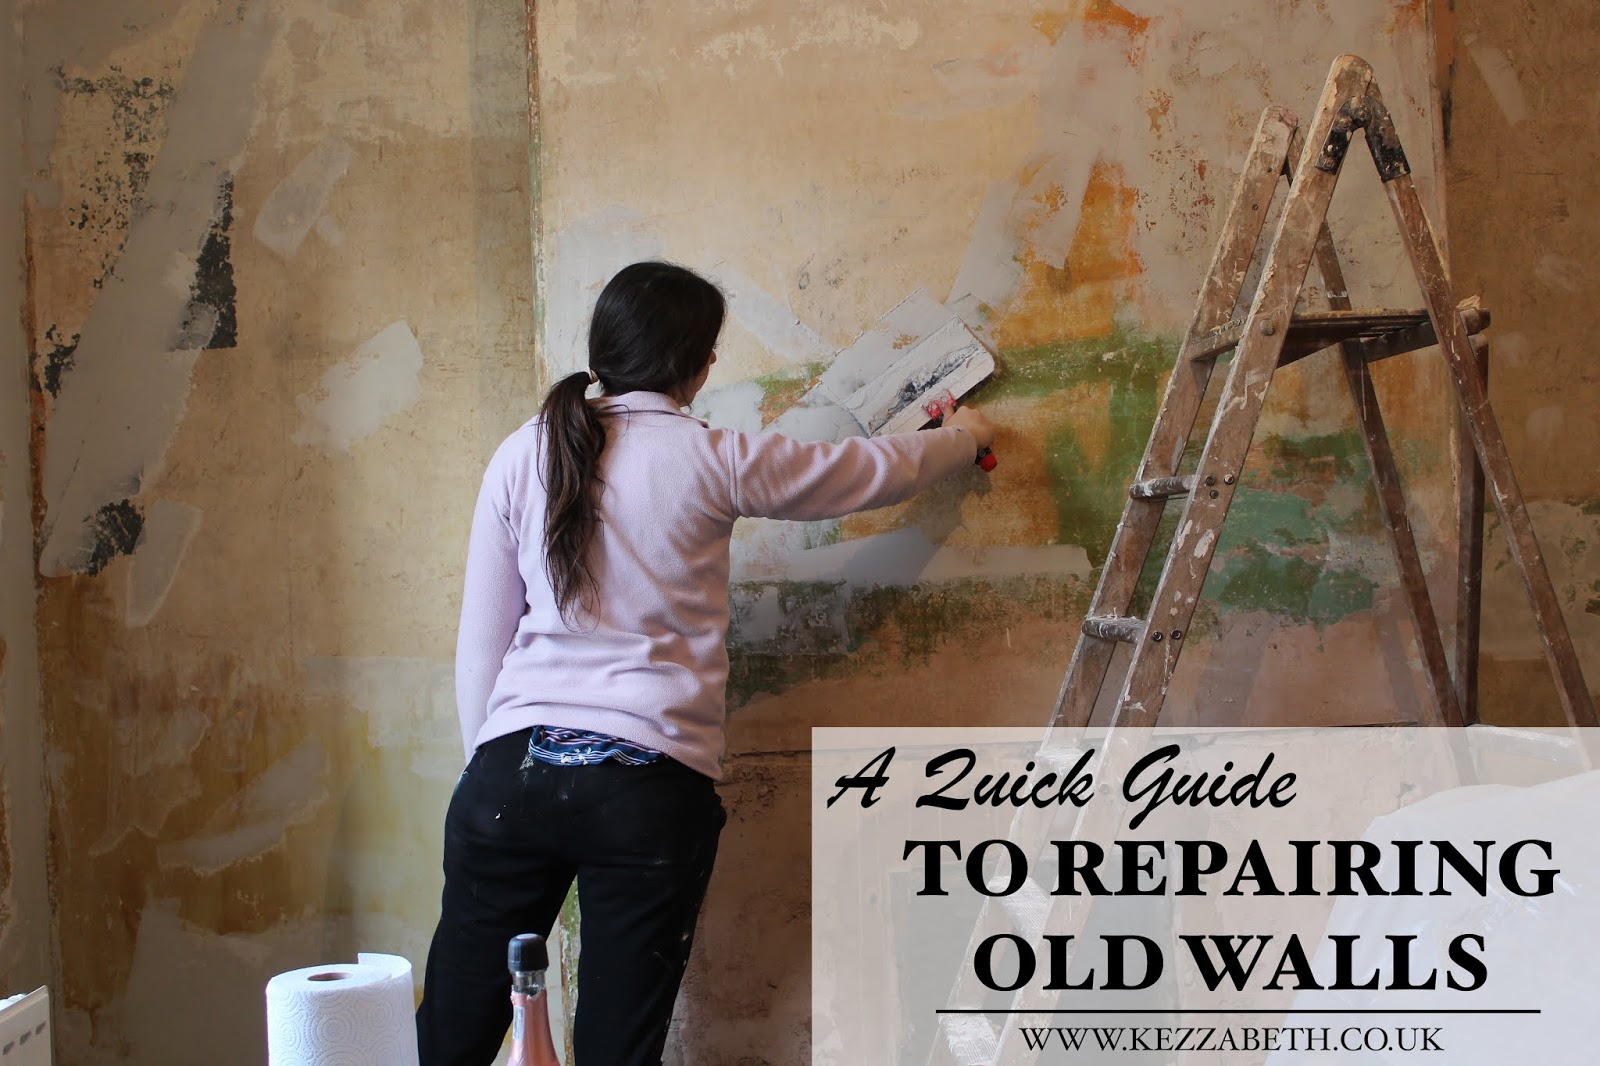 A Quick Guide to repairing old walls - how to